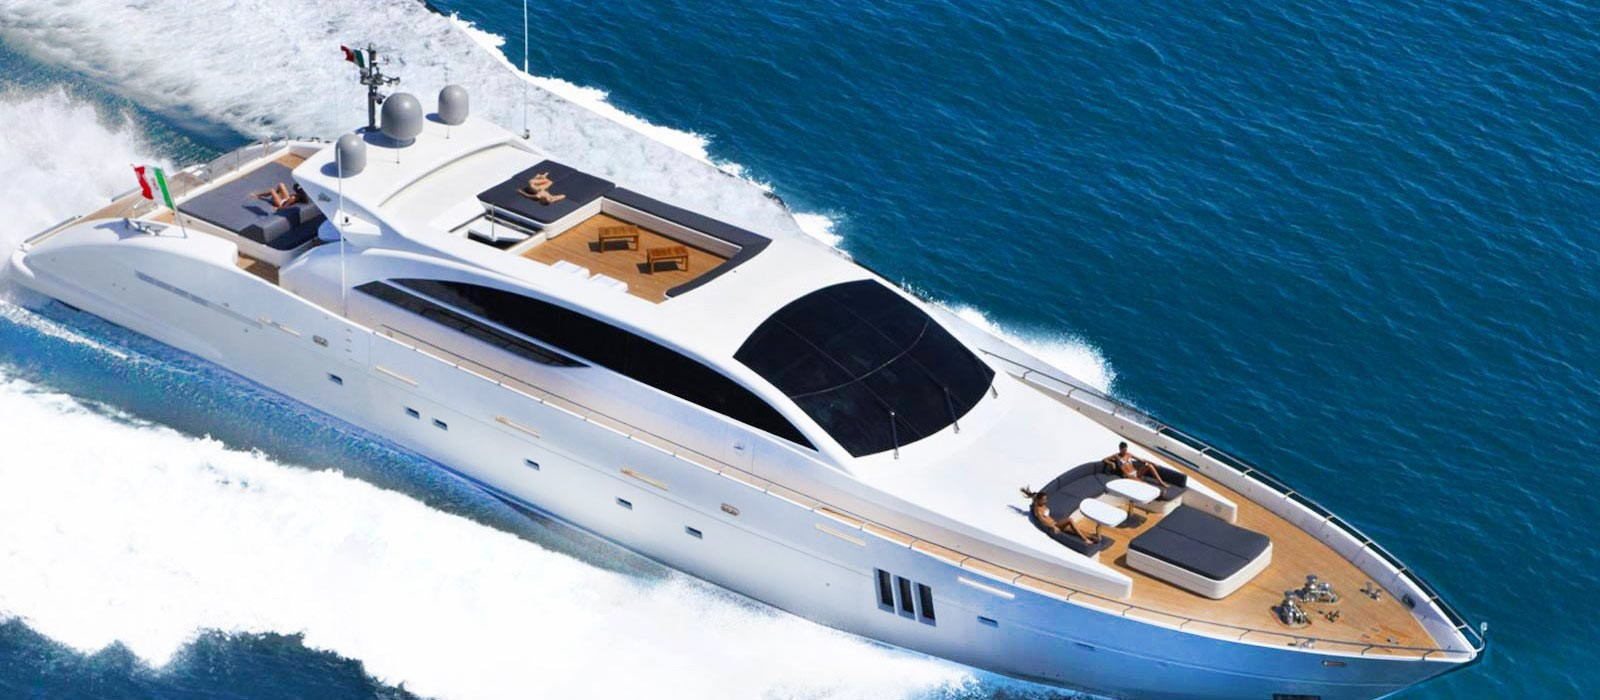 Are You Considering a Luxury Yacht Charter?